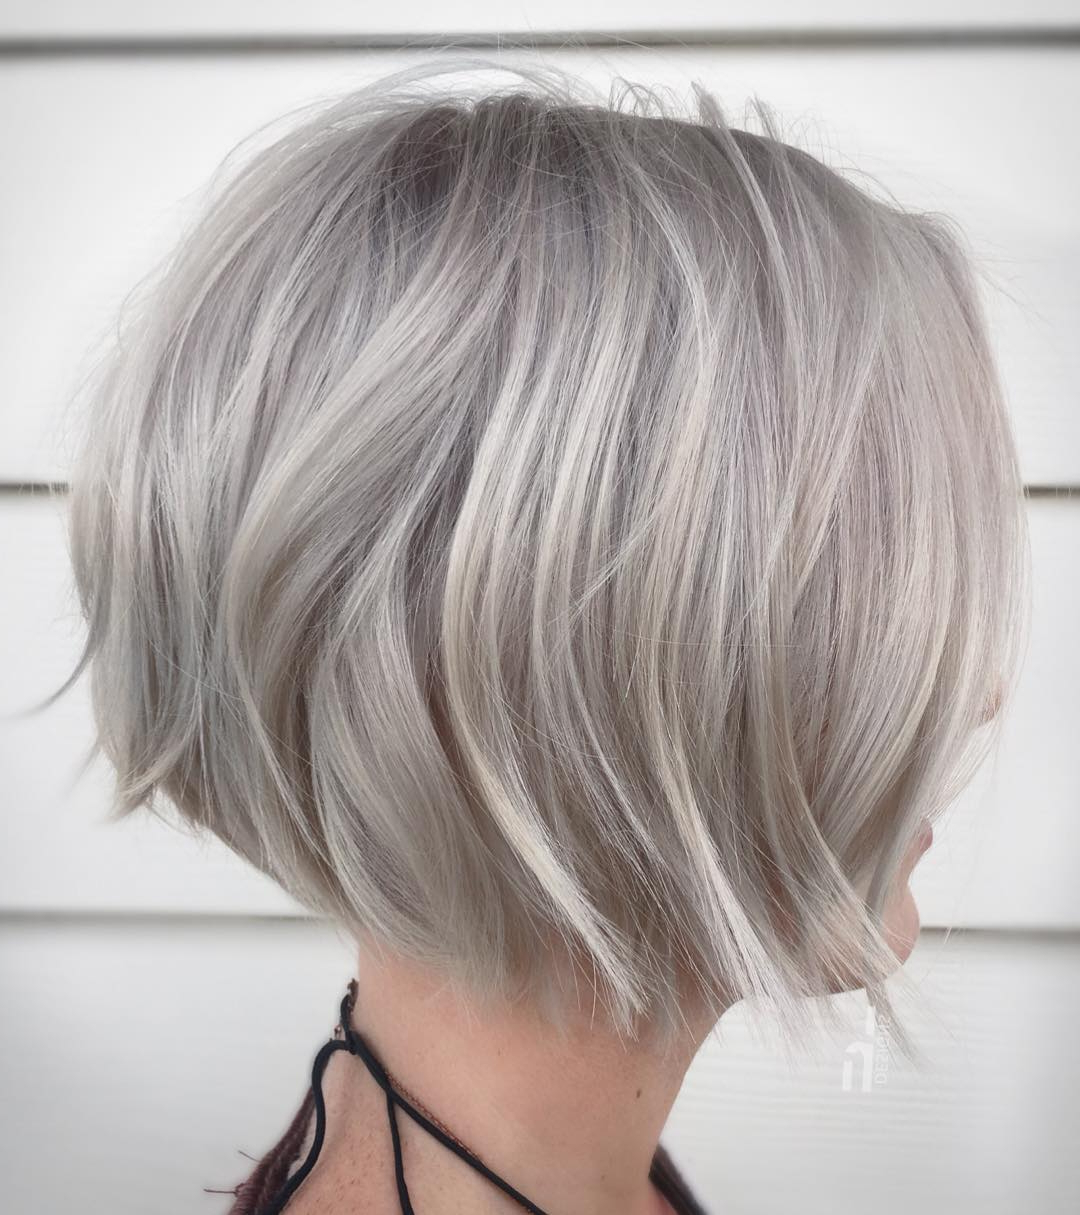 10 Stylish Medium Bob Haircuts For Women – Easy Care Chic Bob Hair 2019 With Regard To Choppy Rounded Ash Blonde Bob Haircuts (View 6 of 20)